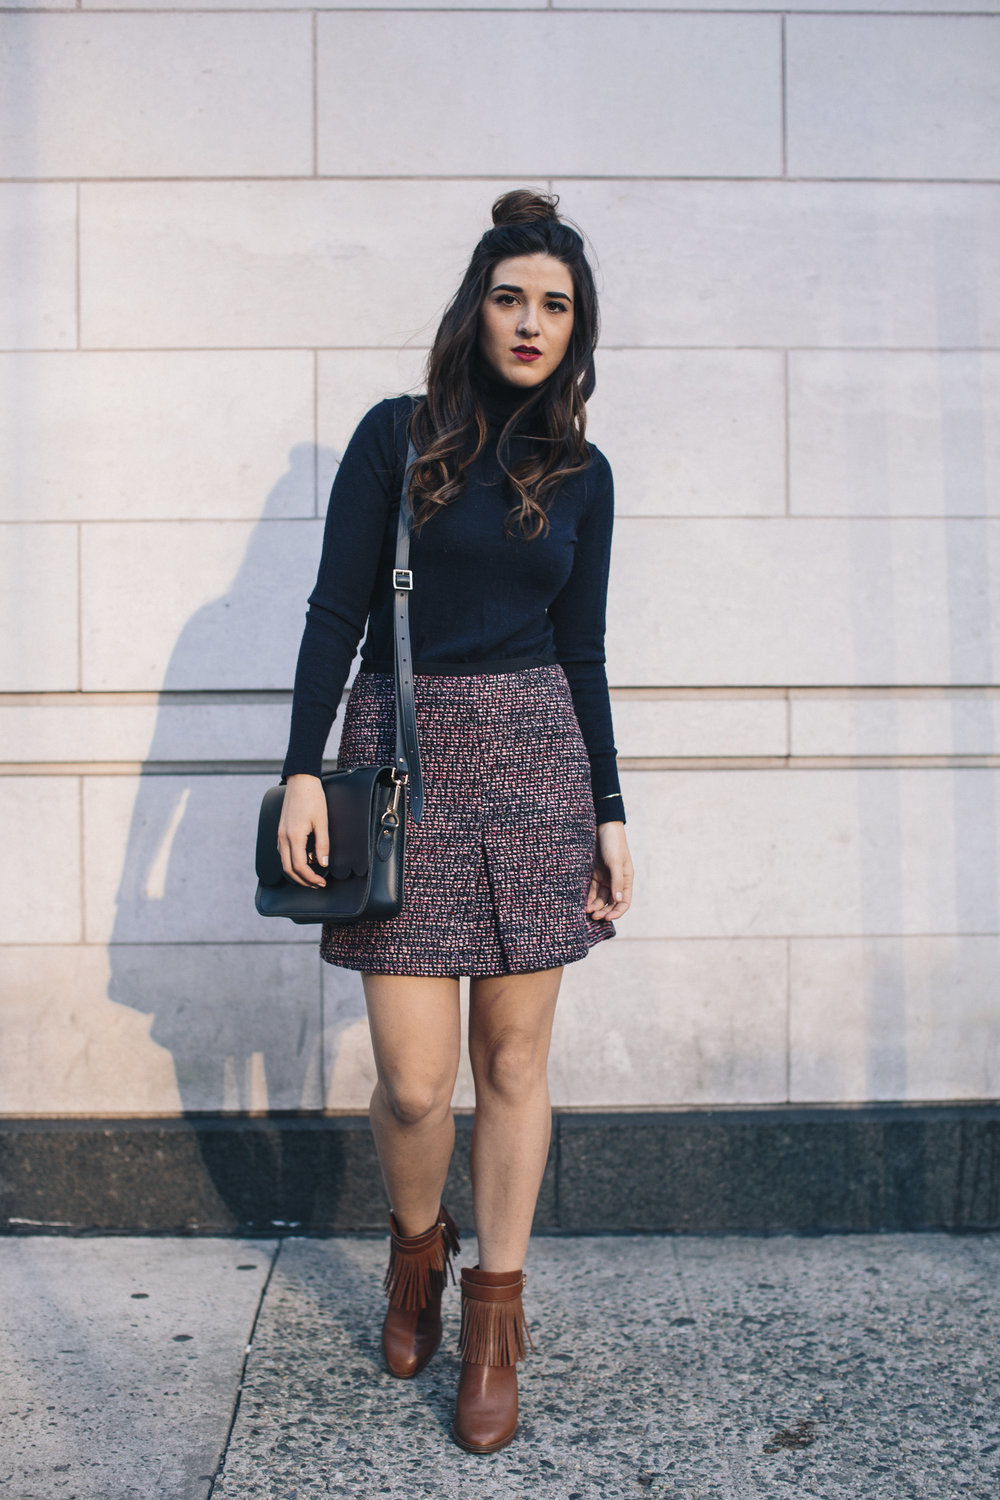 Navy Turtleneck Tweed Skirt My 10 Best Blogging Moments Louboutins & Love Fashion Blog Esther Santer NYC Street Style Blogger Outfit OOTD Trendy Cambridge Satchel Topknot Bag Hair Bun Women Girl Winter Beauty Shop Tan Fringe Shoes Ivanka Trump Booties.jpg